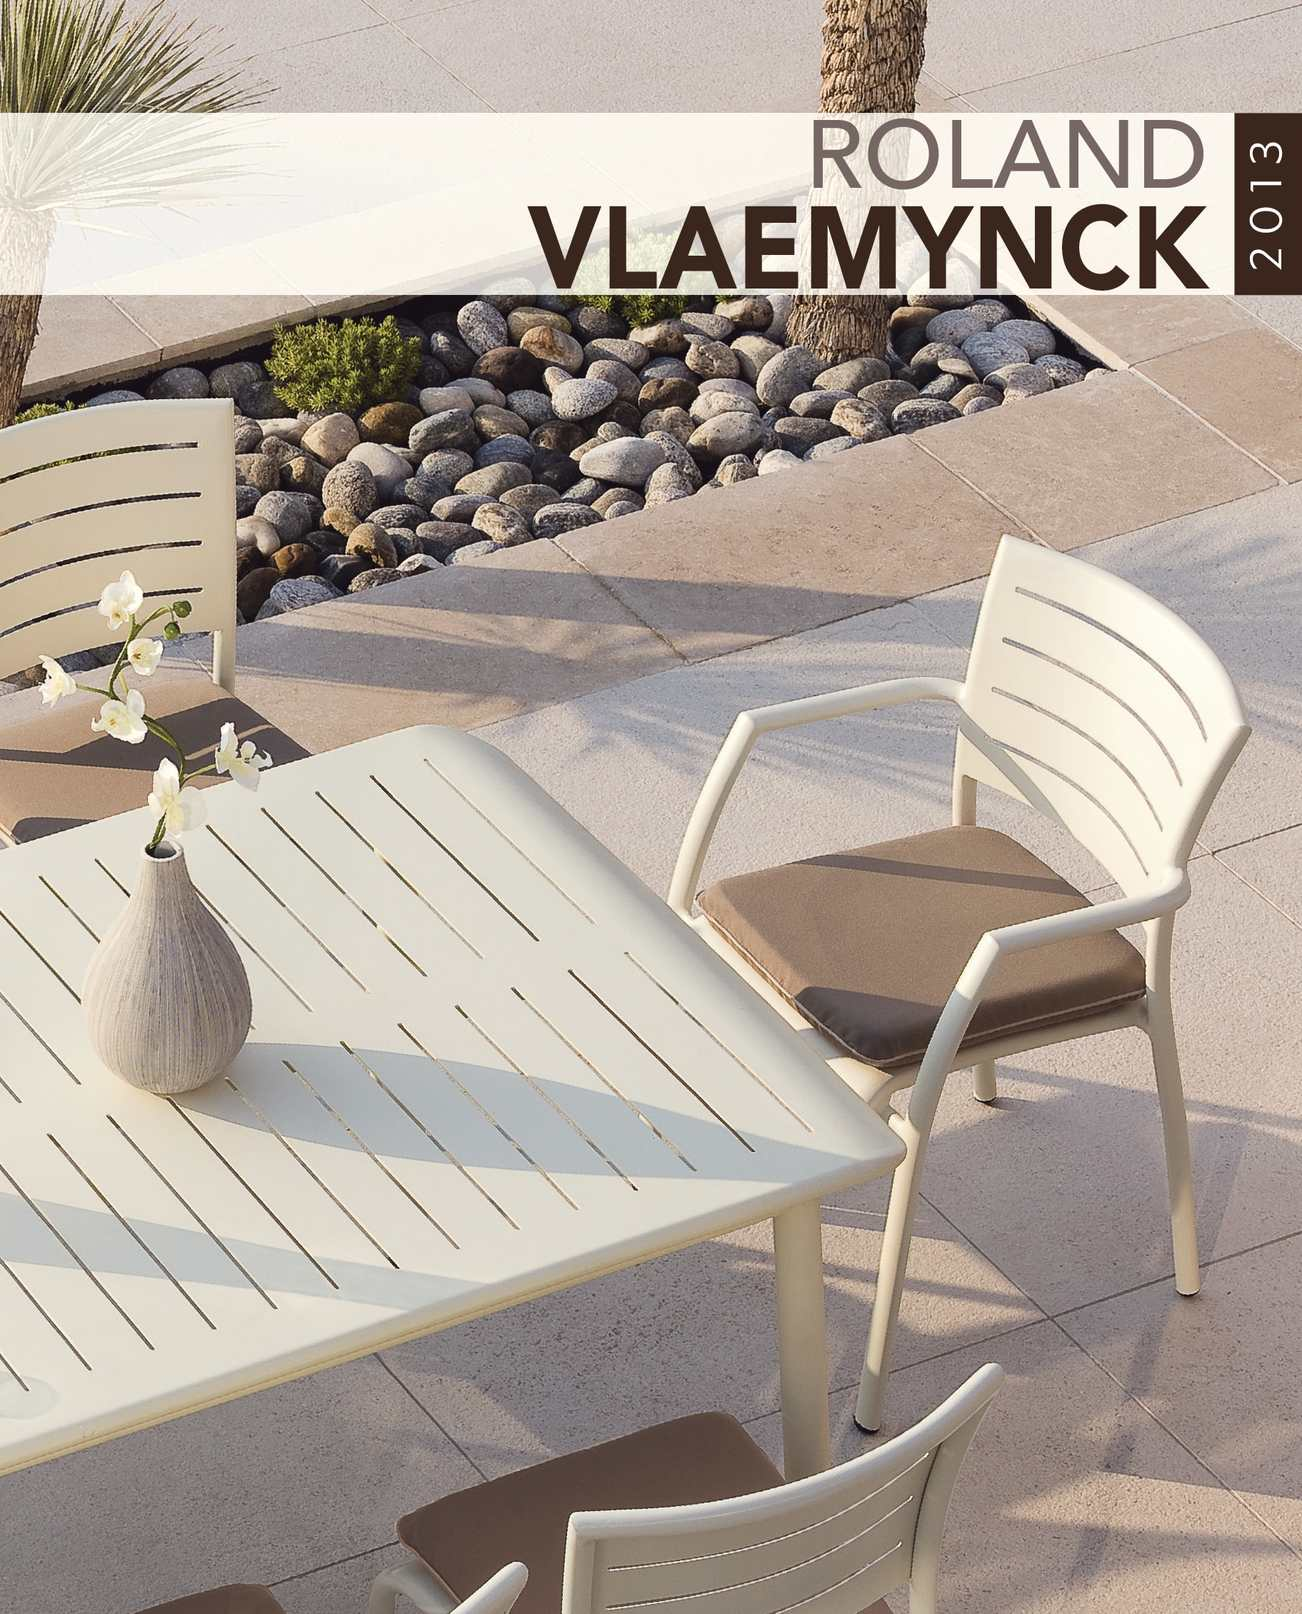 Calaméo - Roland VLAEMYNCK outdoor furniture catalogue